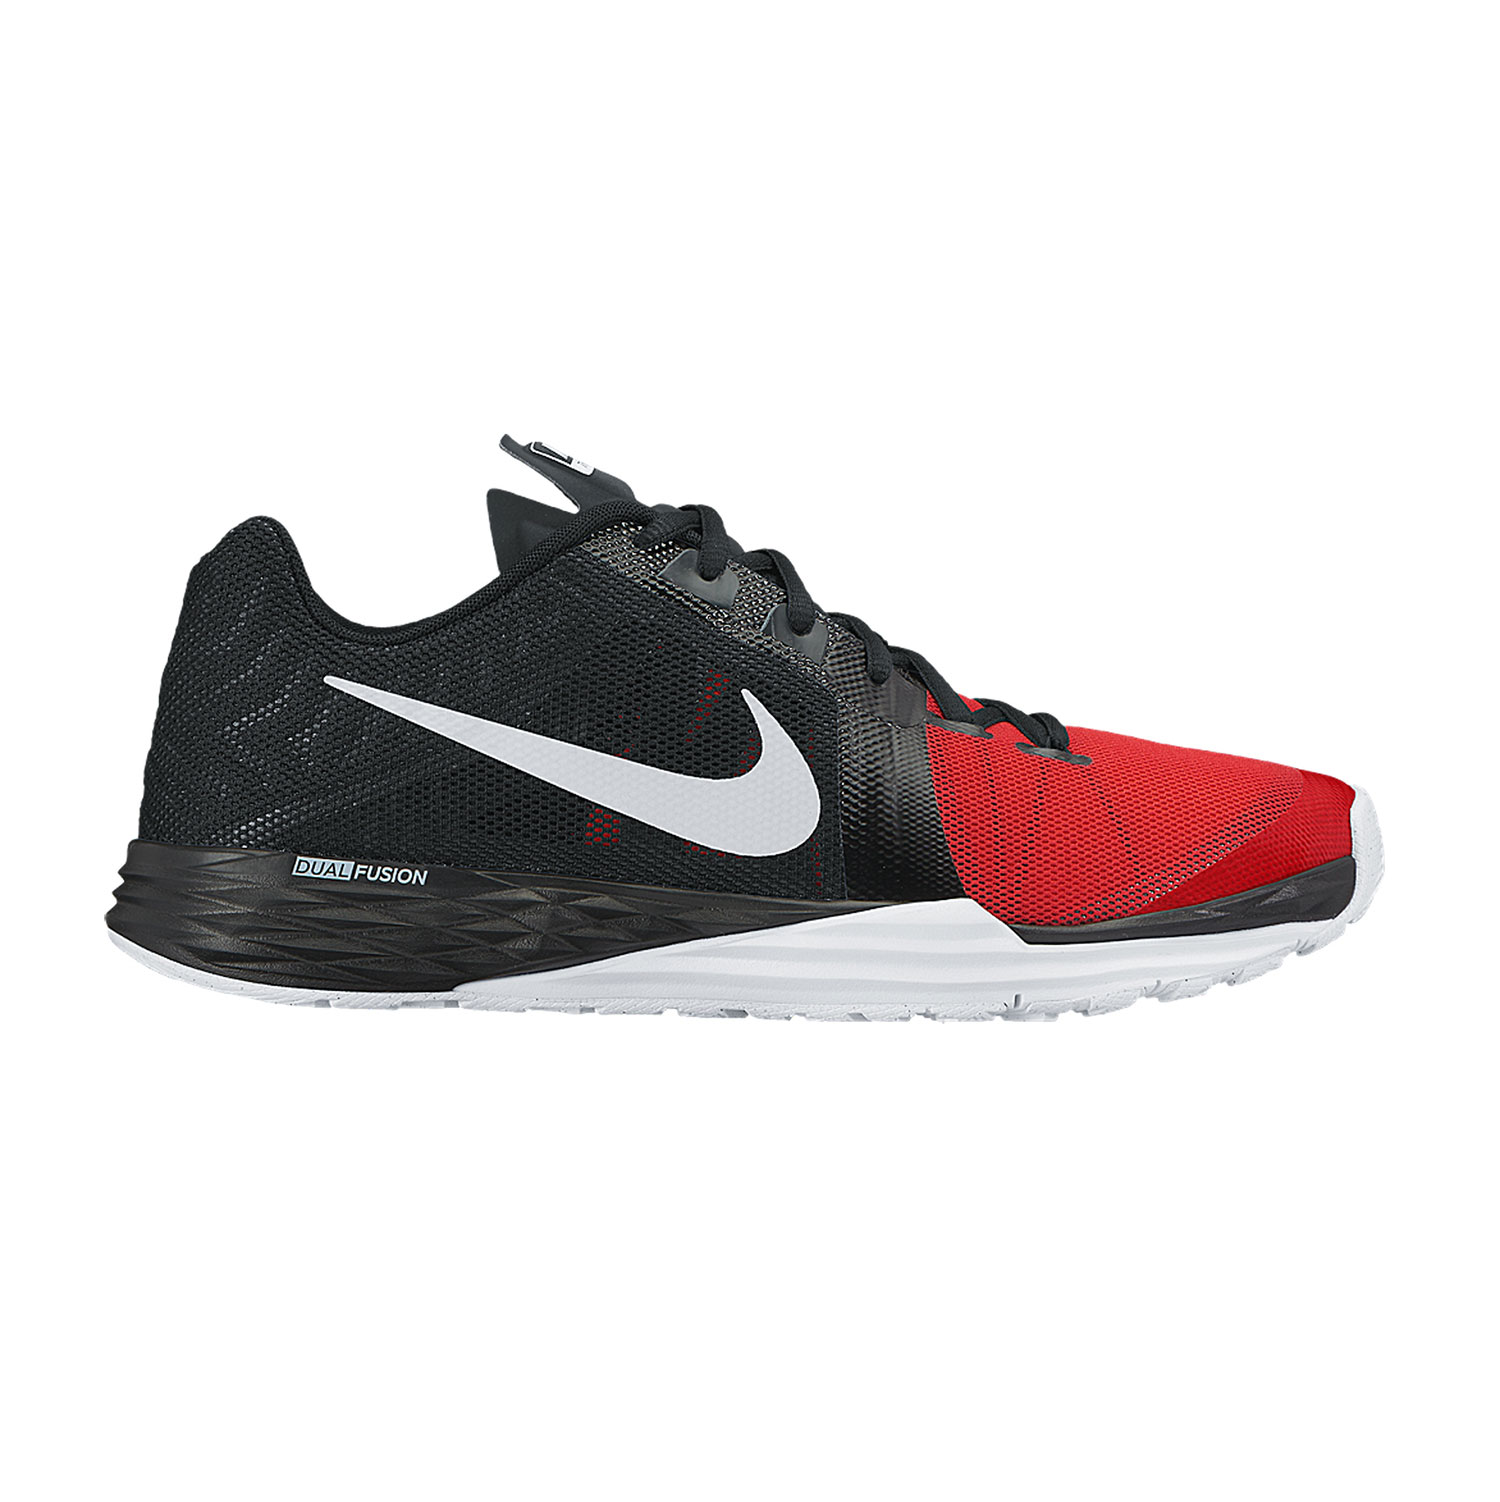 Nike Prime Iron DF Training Shoe